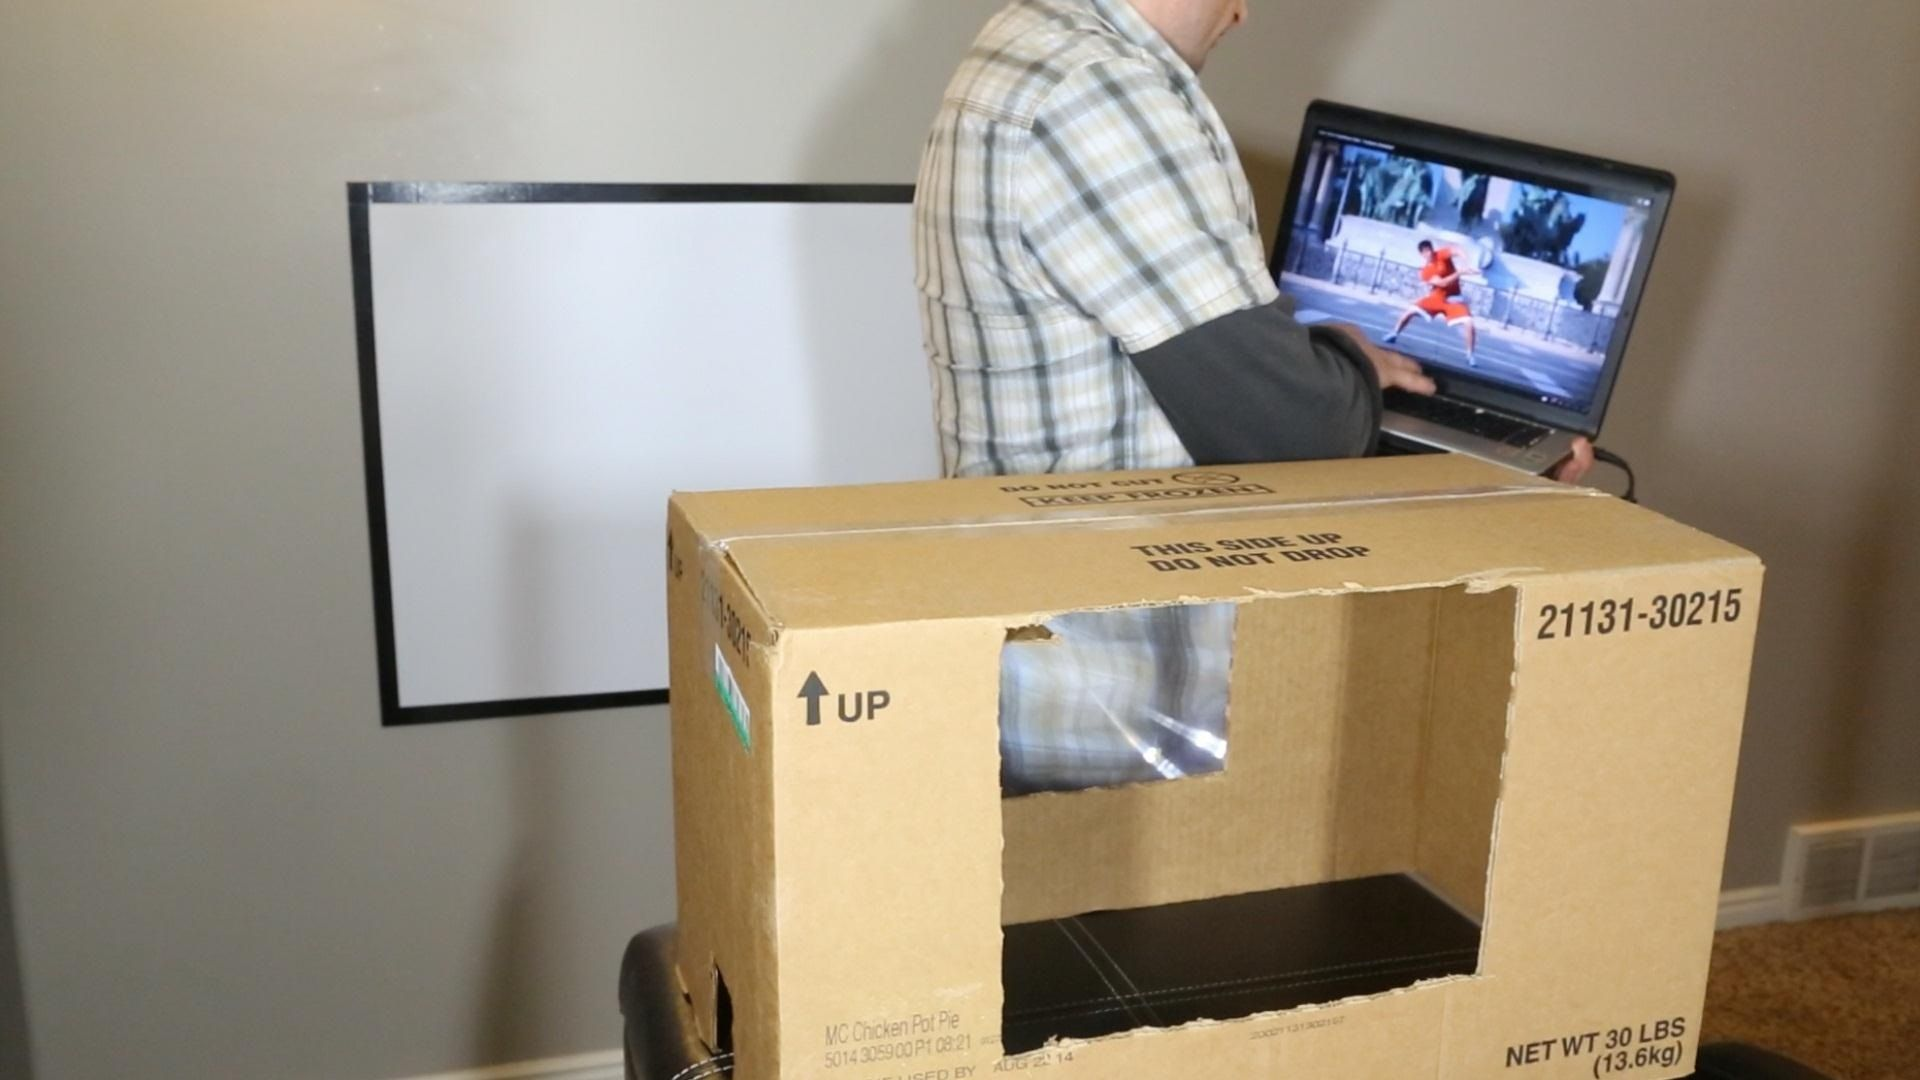 How To Make A Diy Home Theater Projector And 50 Screen For Only 5 Great For March Madness Home Theater Setup Diy Projector Home Diy